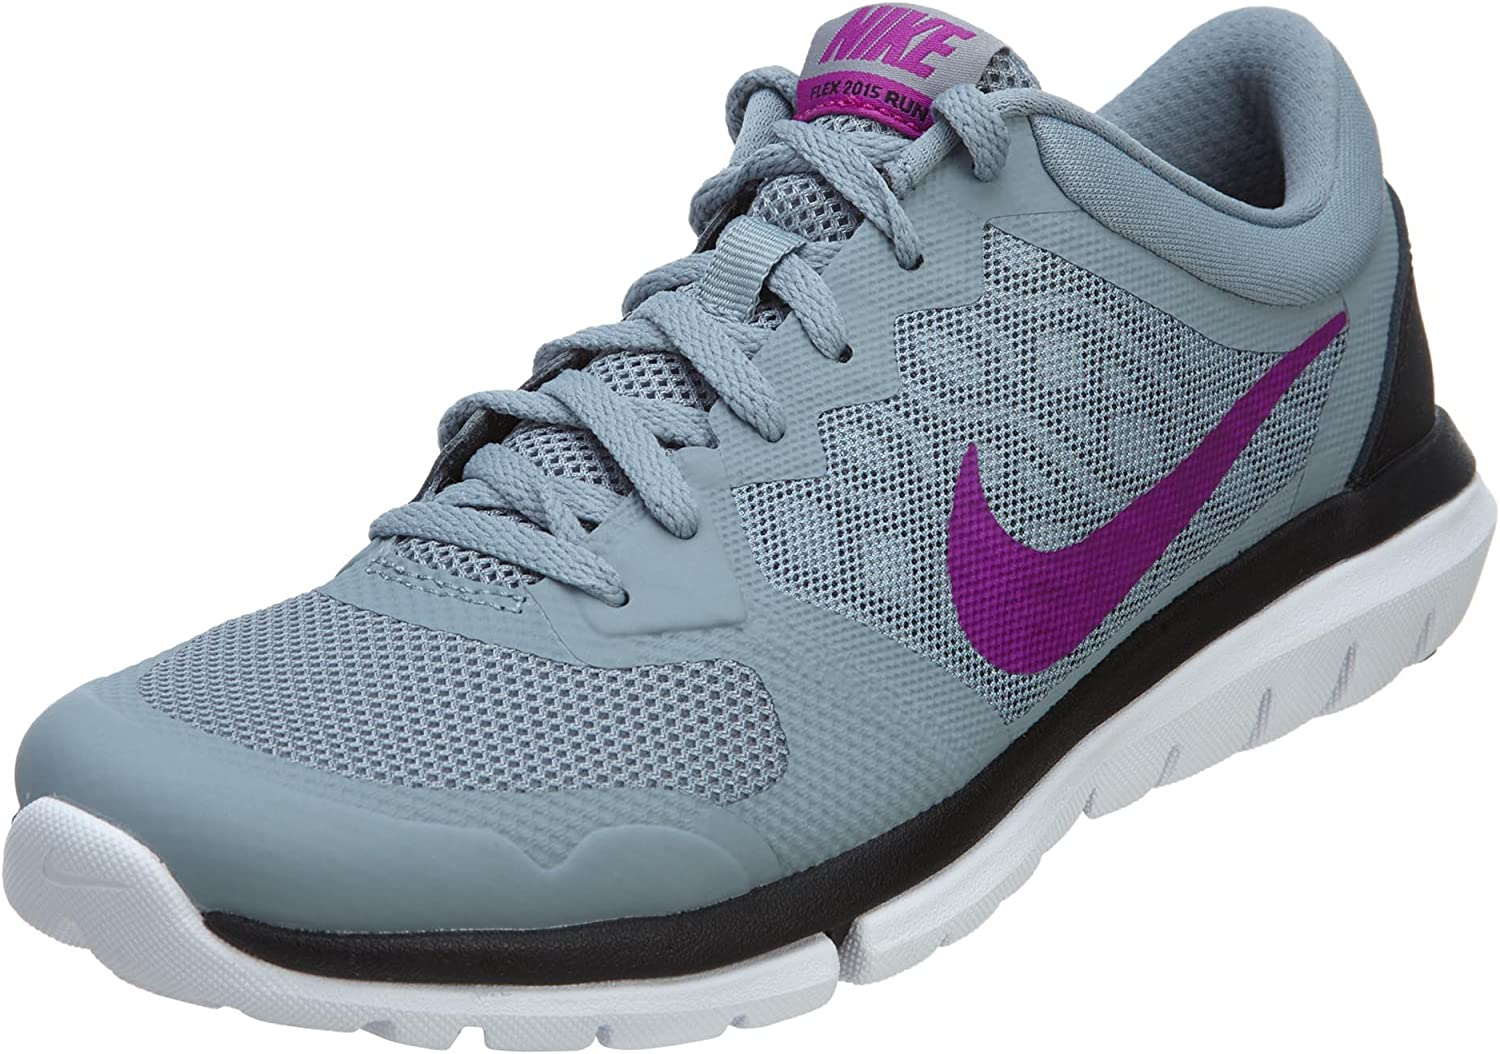 Nike Flex 2015 RUN Dove Grey Black Classic Charcoal Fuchsia Flash Women s Running Shoes Dove Grey Black Classic Charcoal Fuch.